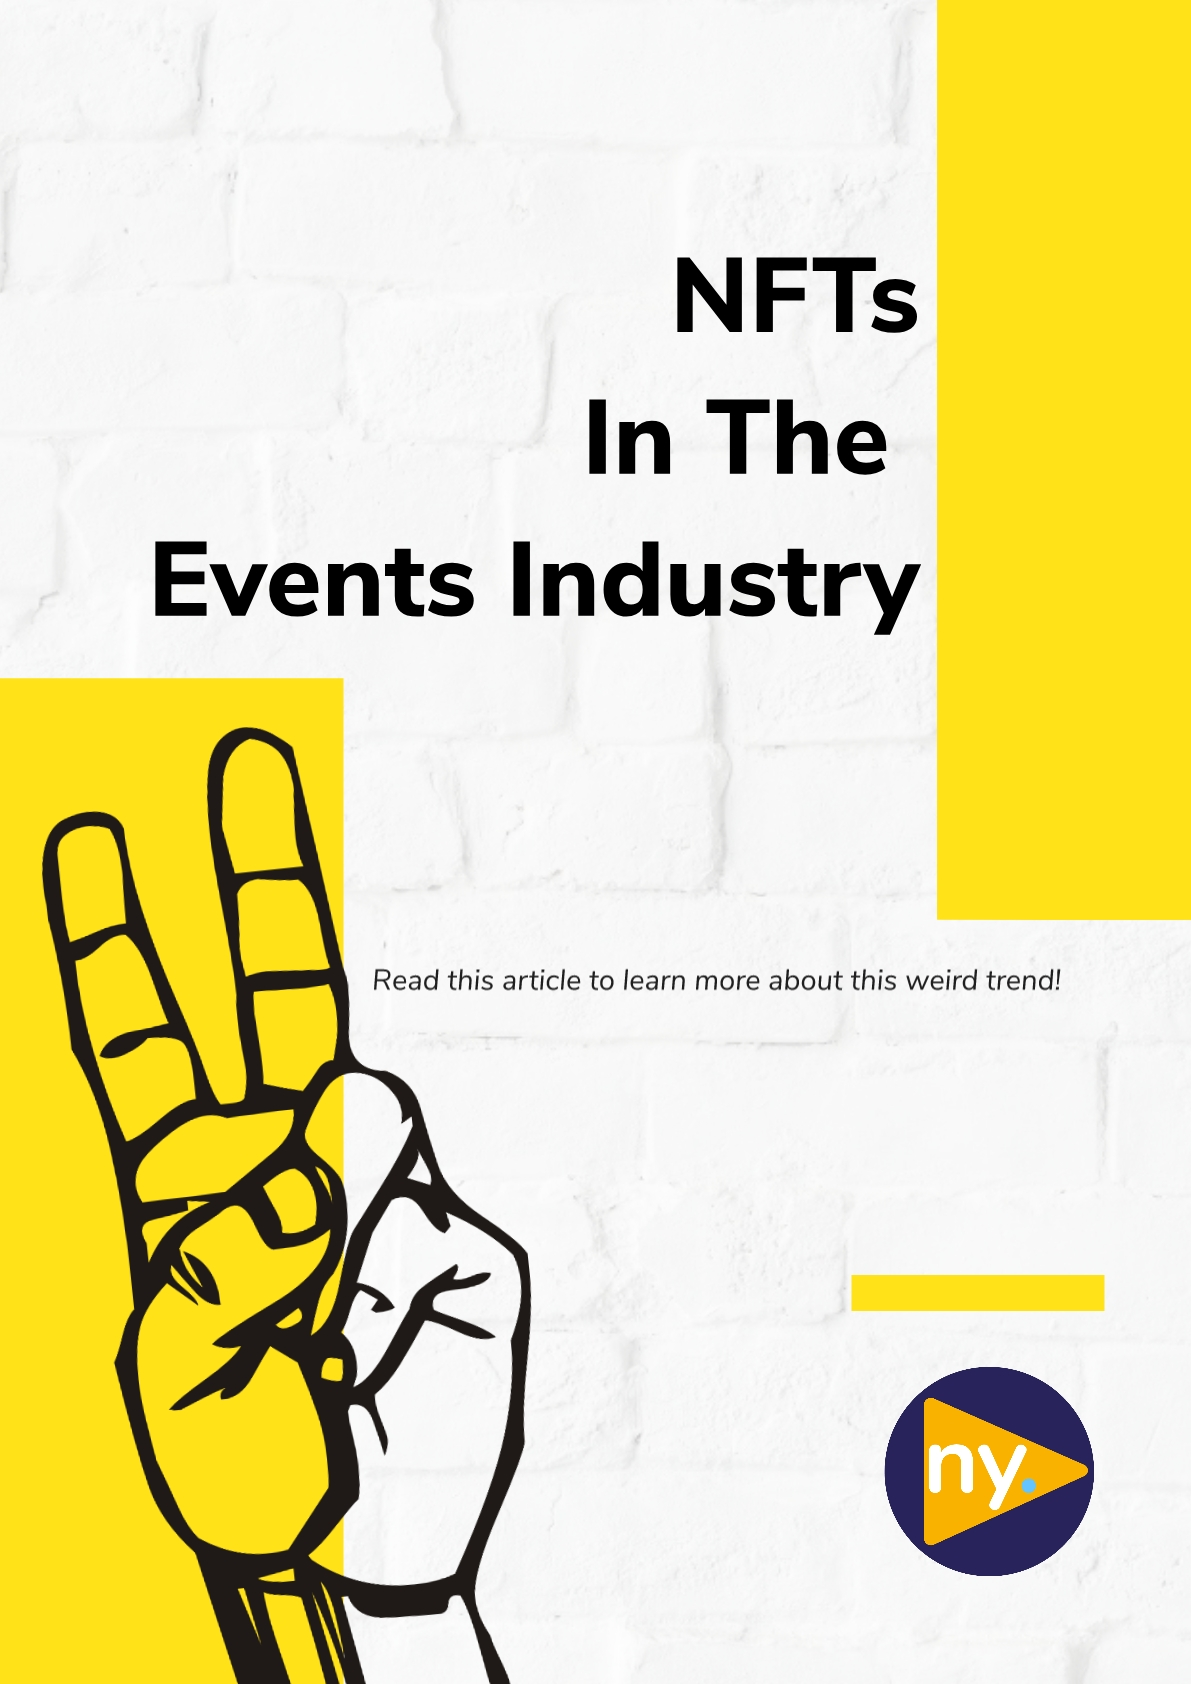 NFTs In The Events Industry